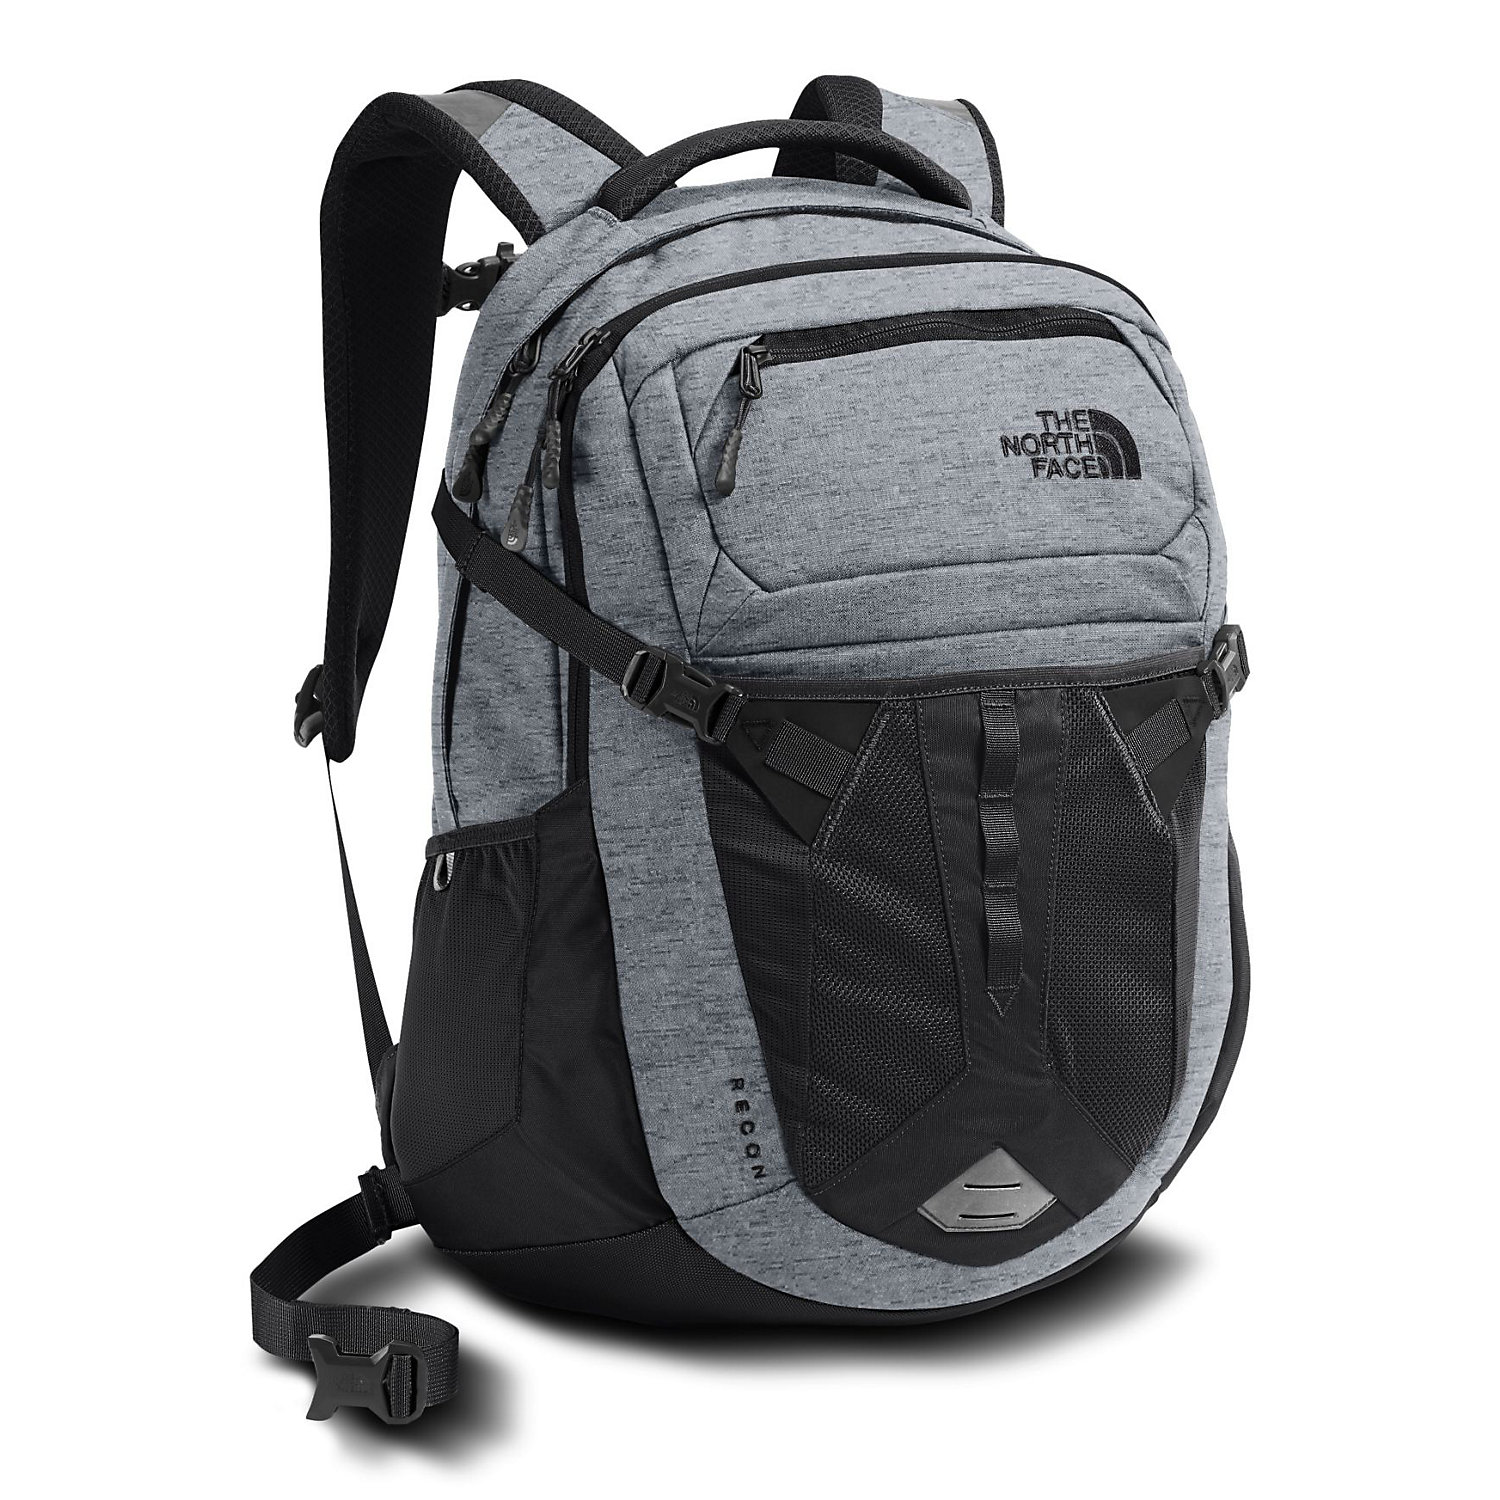 de5e1c13692 The North Face Recon Backpack. Double tap to zoom